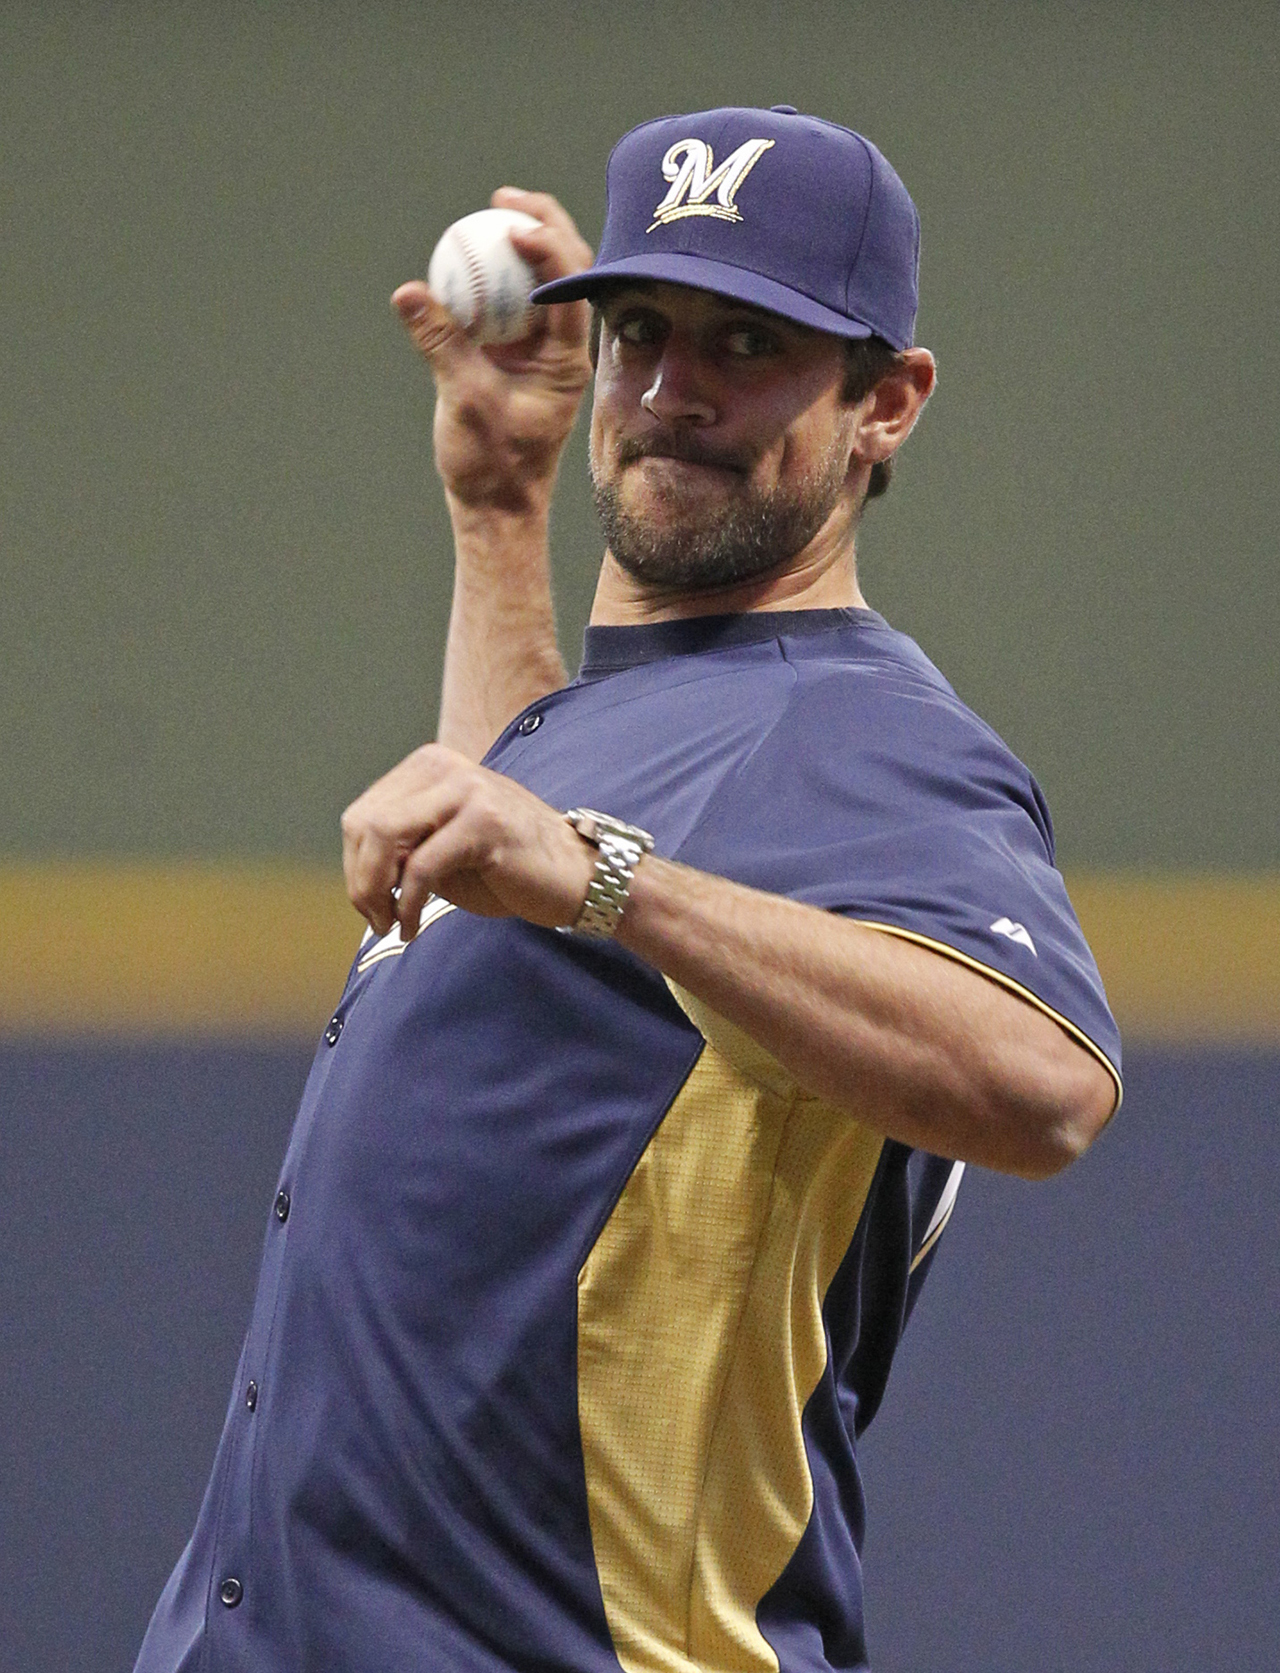 Image result for Aaron rodgers throwing in a baseball hat